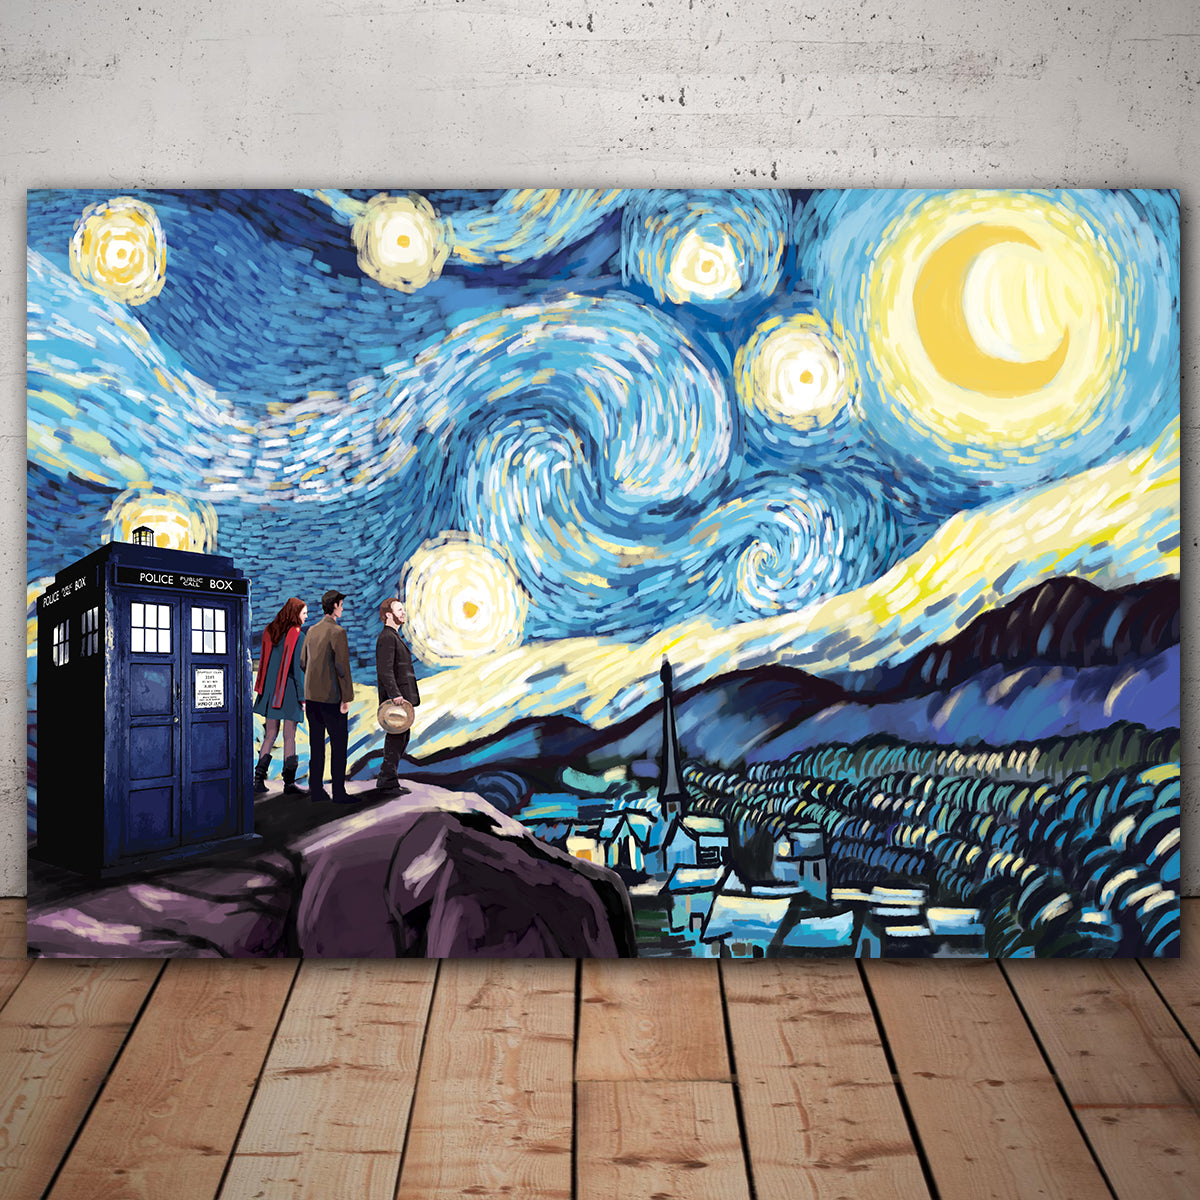 Amex Express Checkout >> Doctor Who Starry Night Framed Canvas Wall Art - TrendySweety